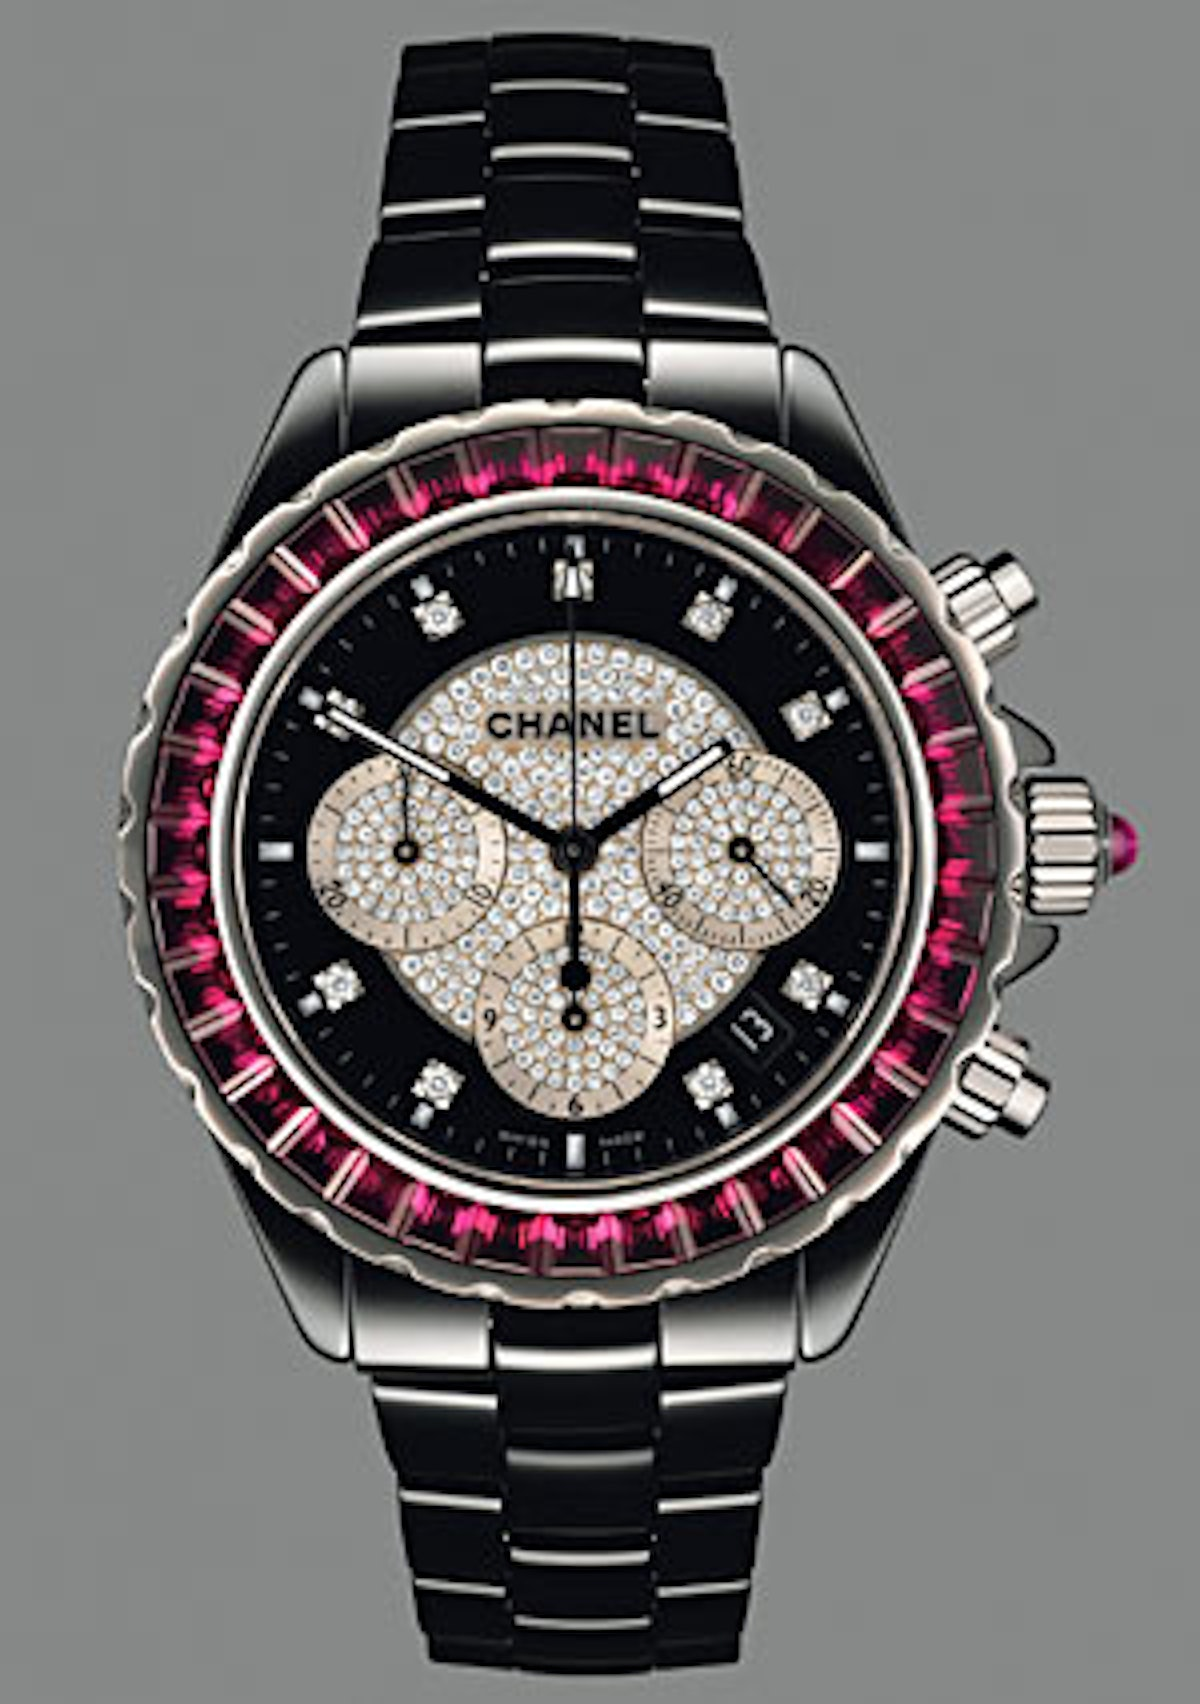 acss_sparkly_watches_02_v.jpg